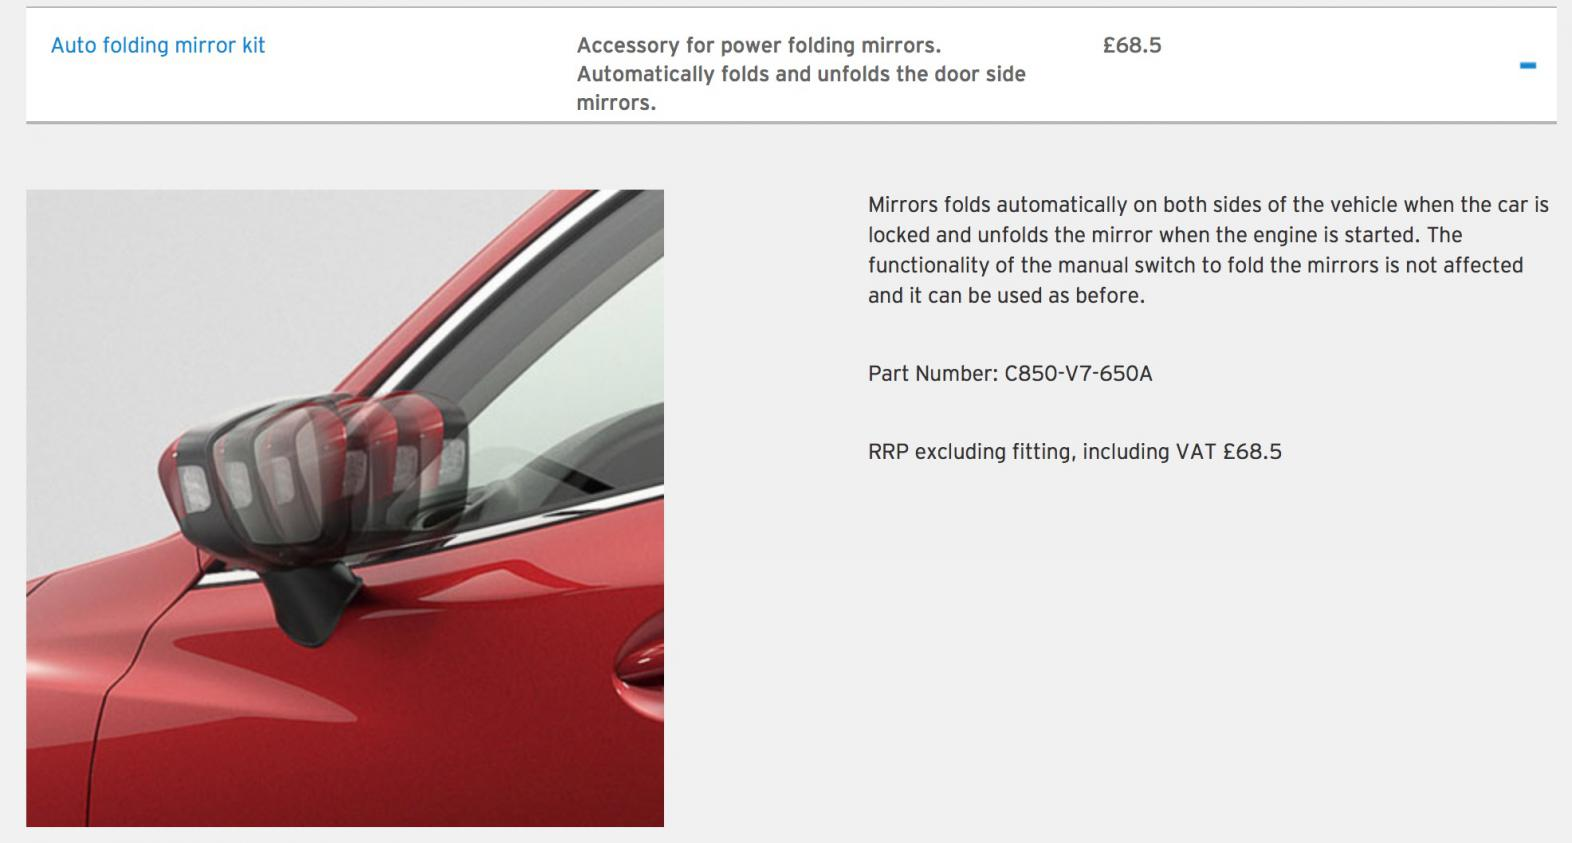 exterior mirrors fold in and out automatically - Mazda CX3 Forum